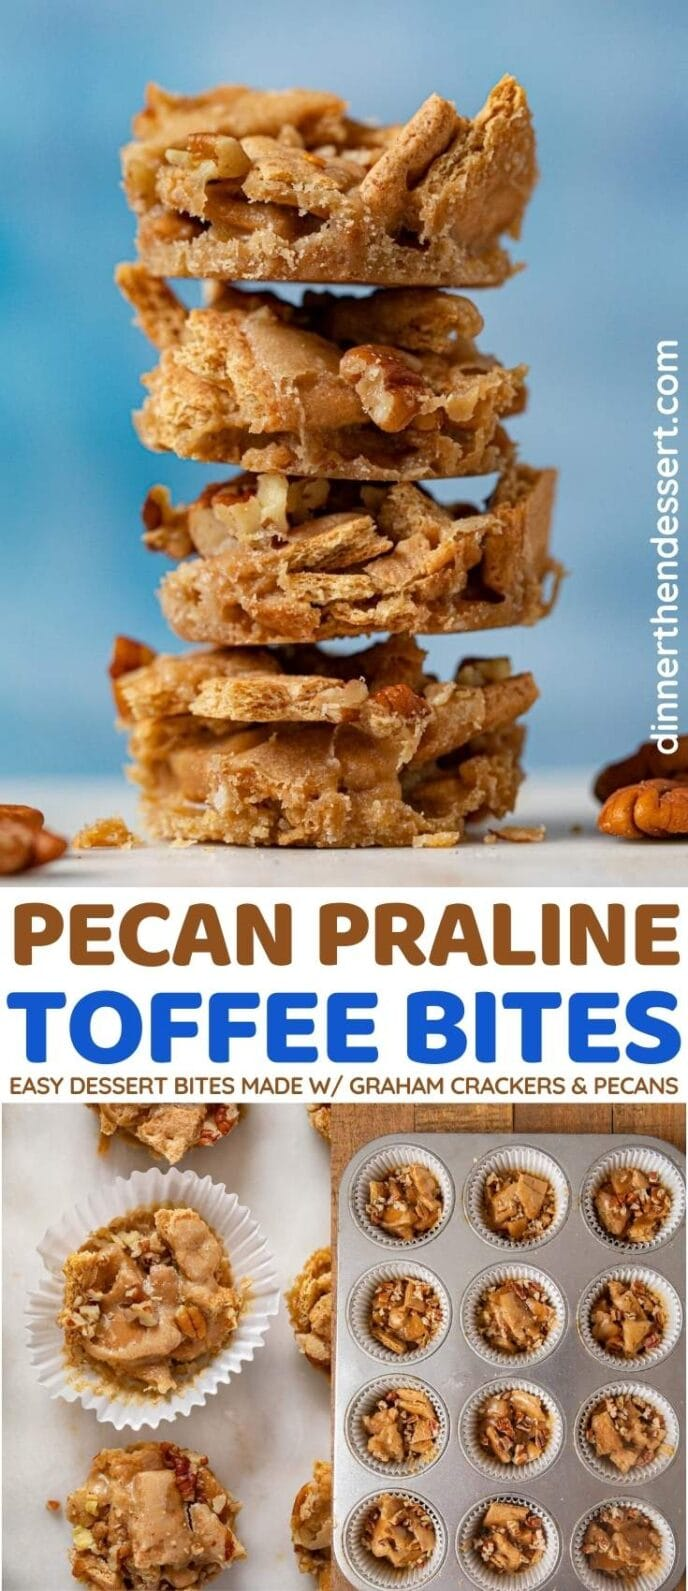 Pecan Praline Toffee Bites collage